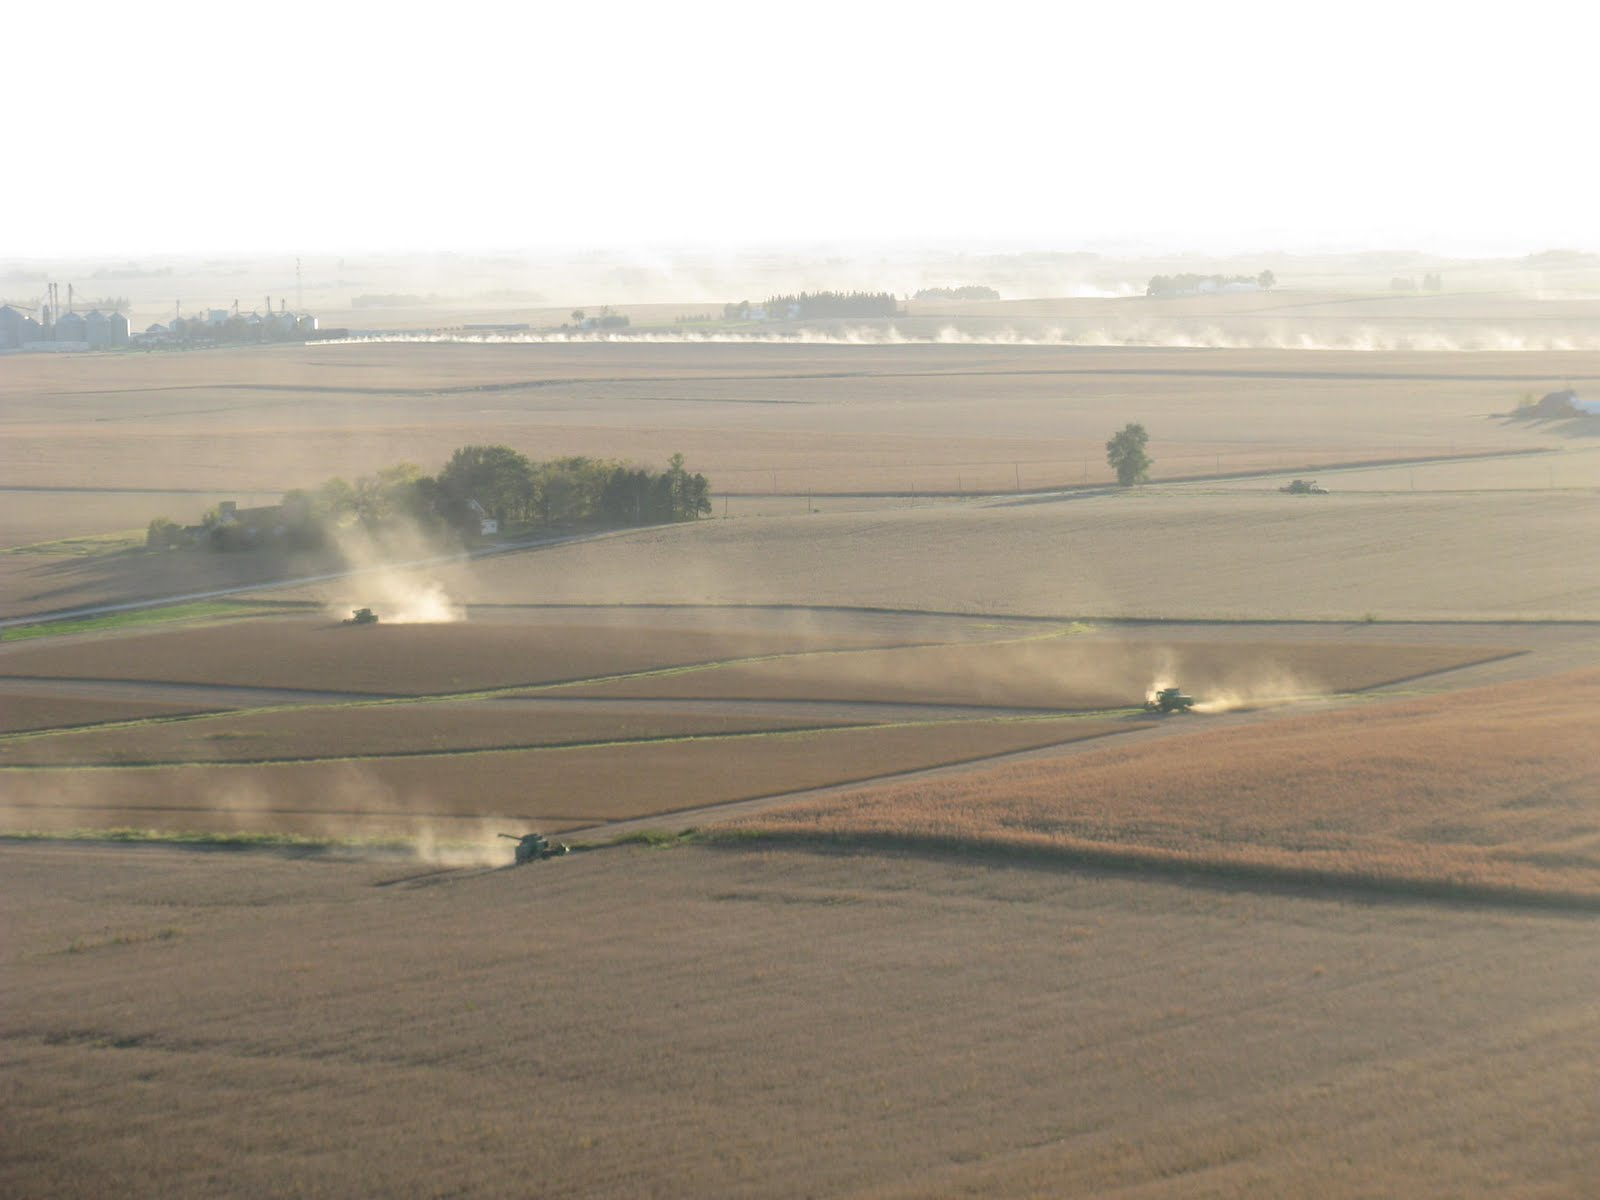 Photo: Dust from 3 soybean combines  AND  one long gravel road